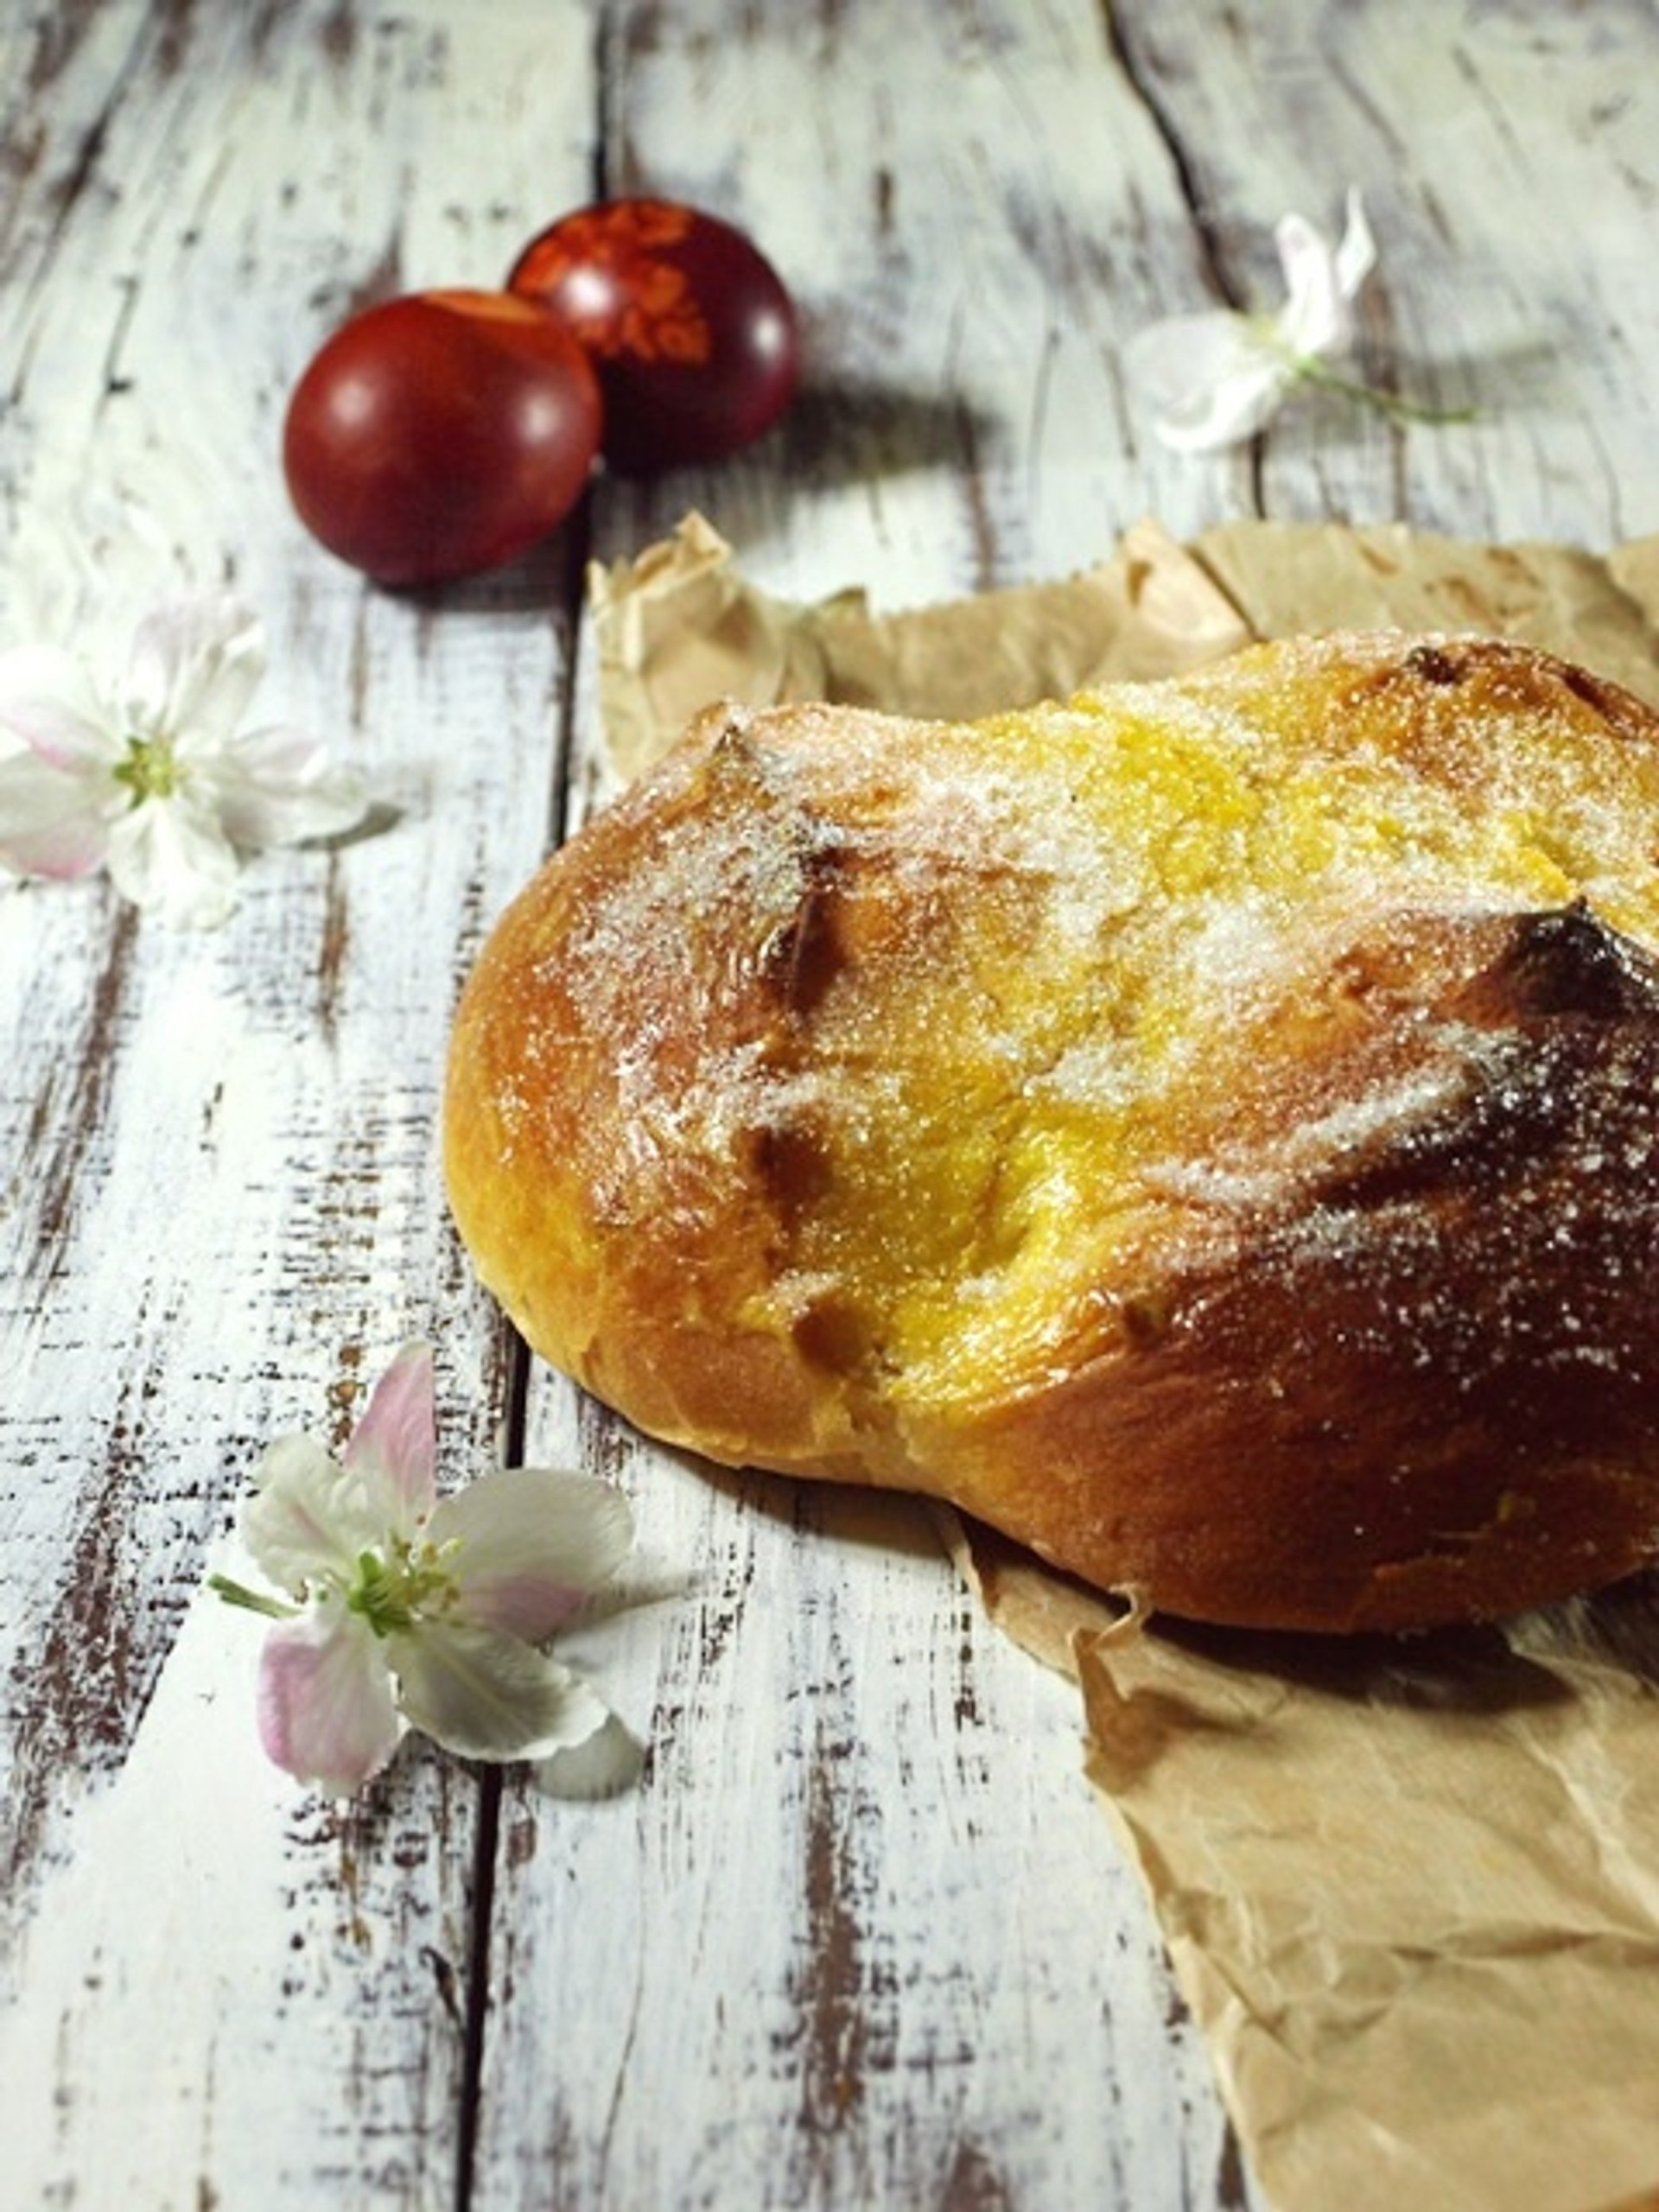 Easter Bread in Croatia 2019 - Best Time